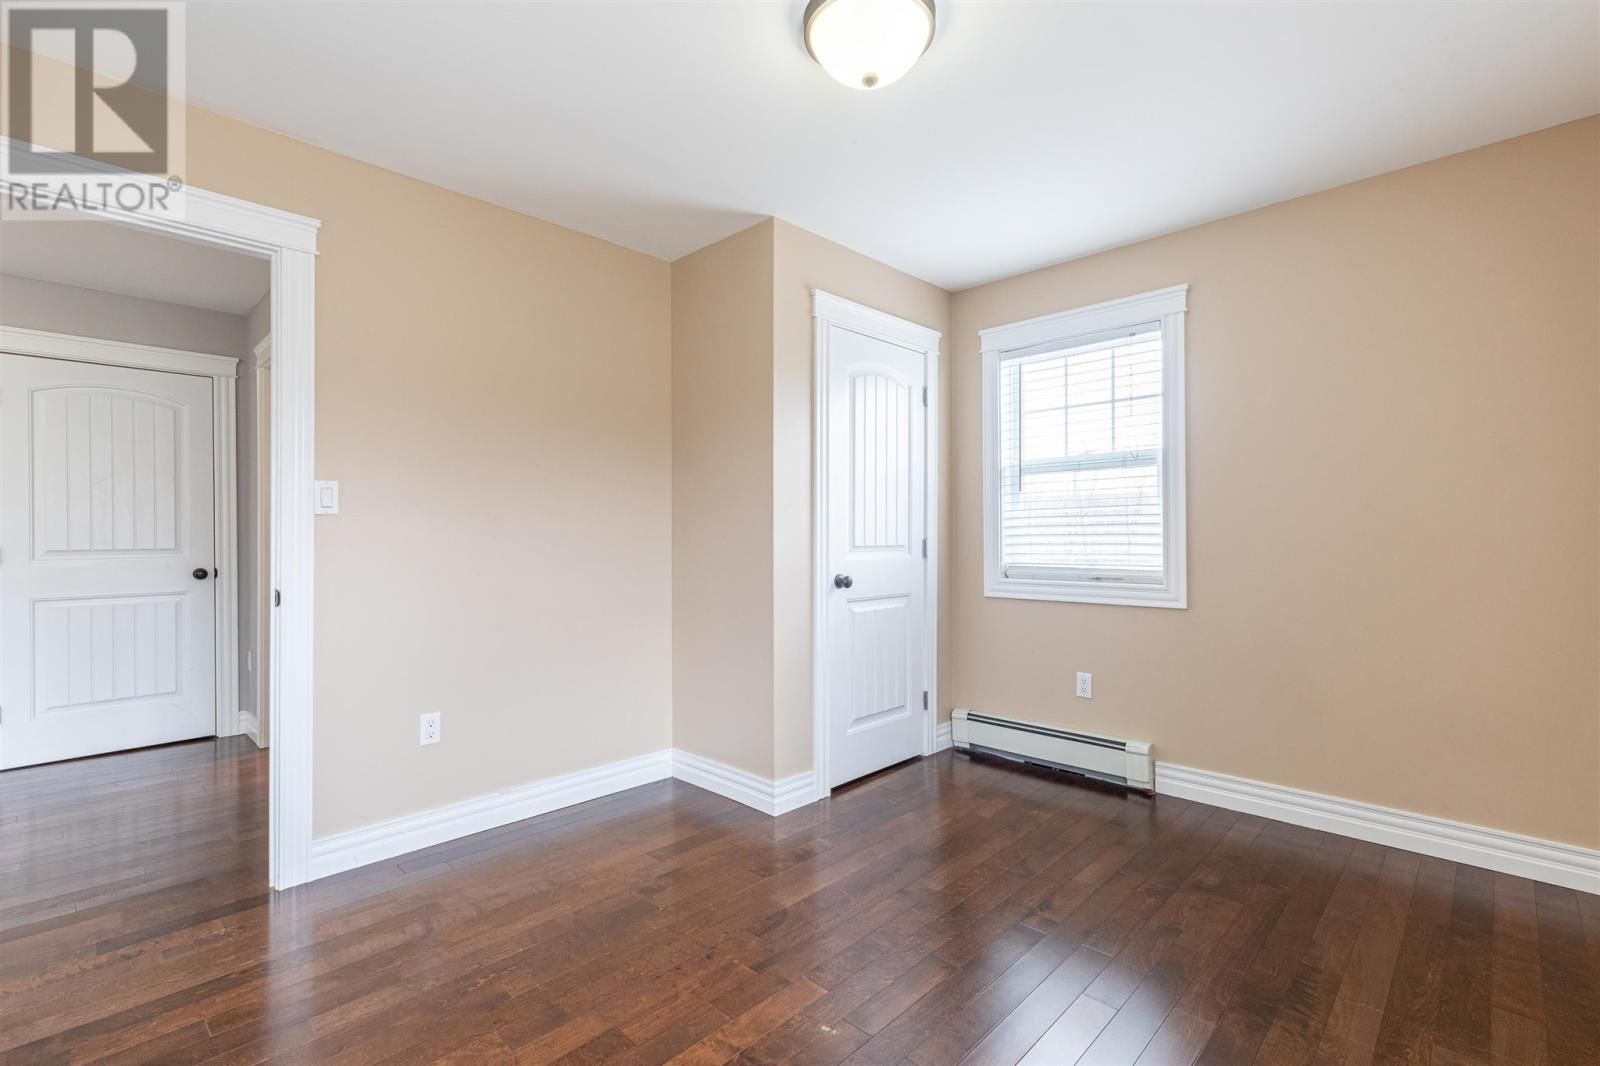 Photo 22: Photos: 5 Cherry Lane in Stratford: House for sale : MLS®# 202119303